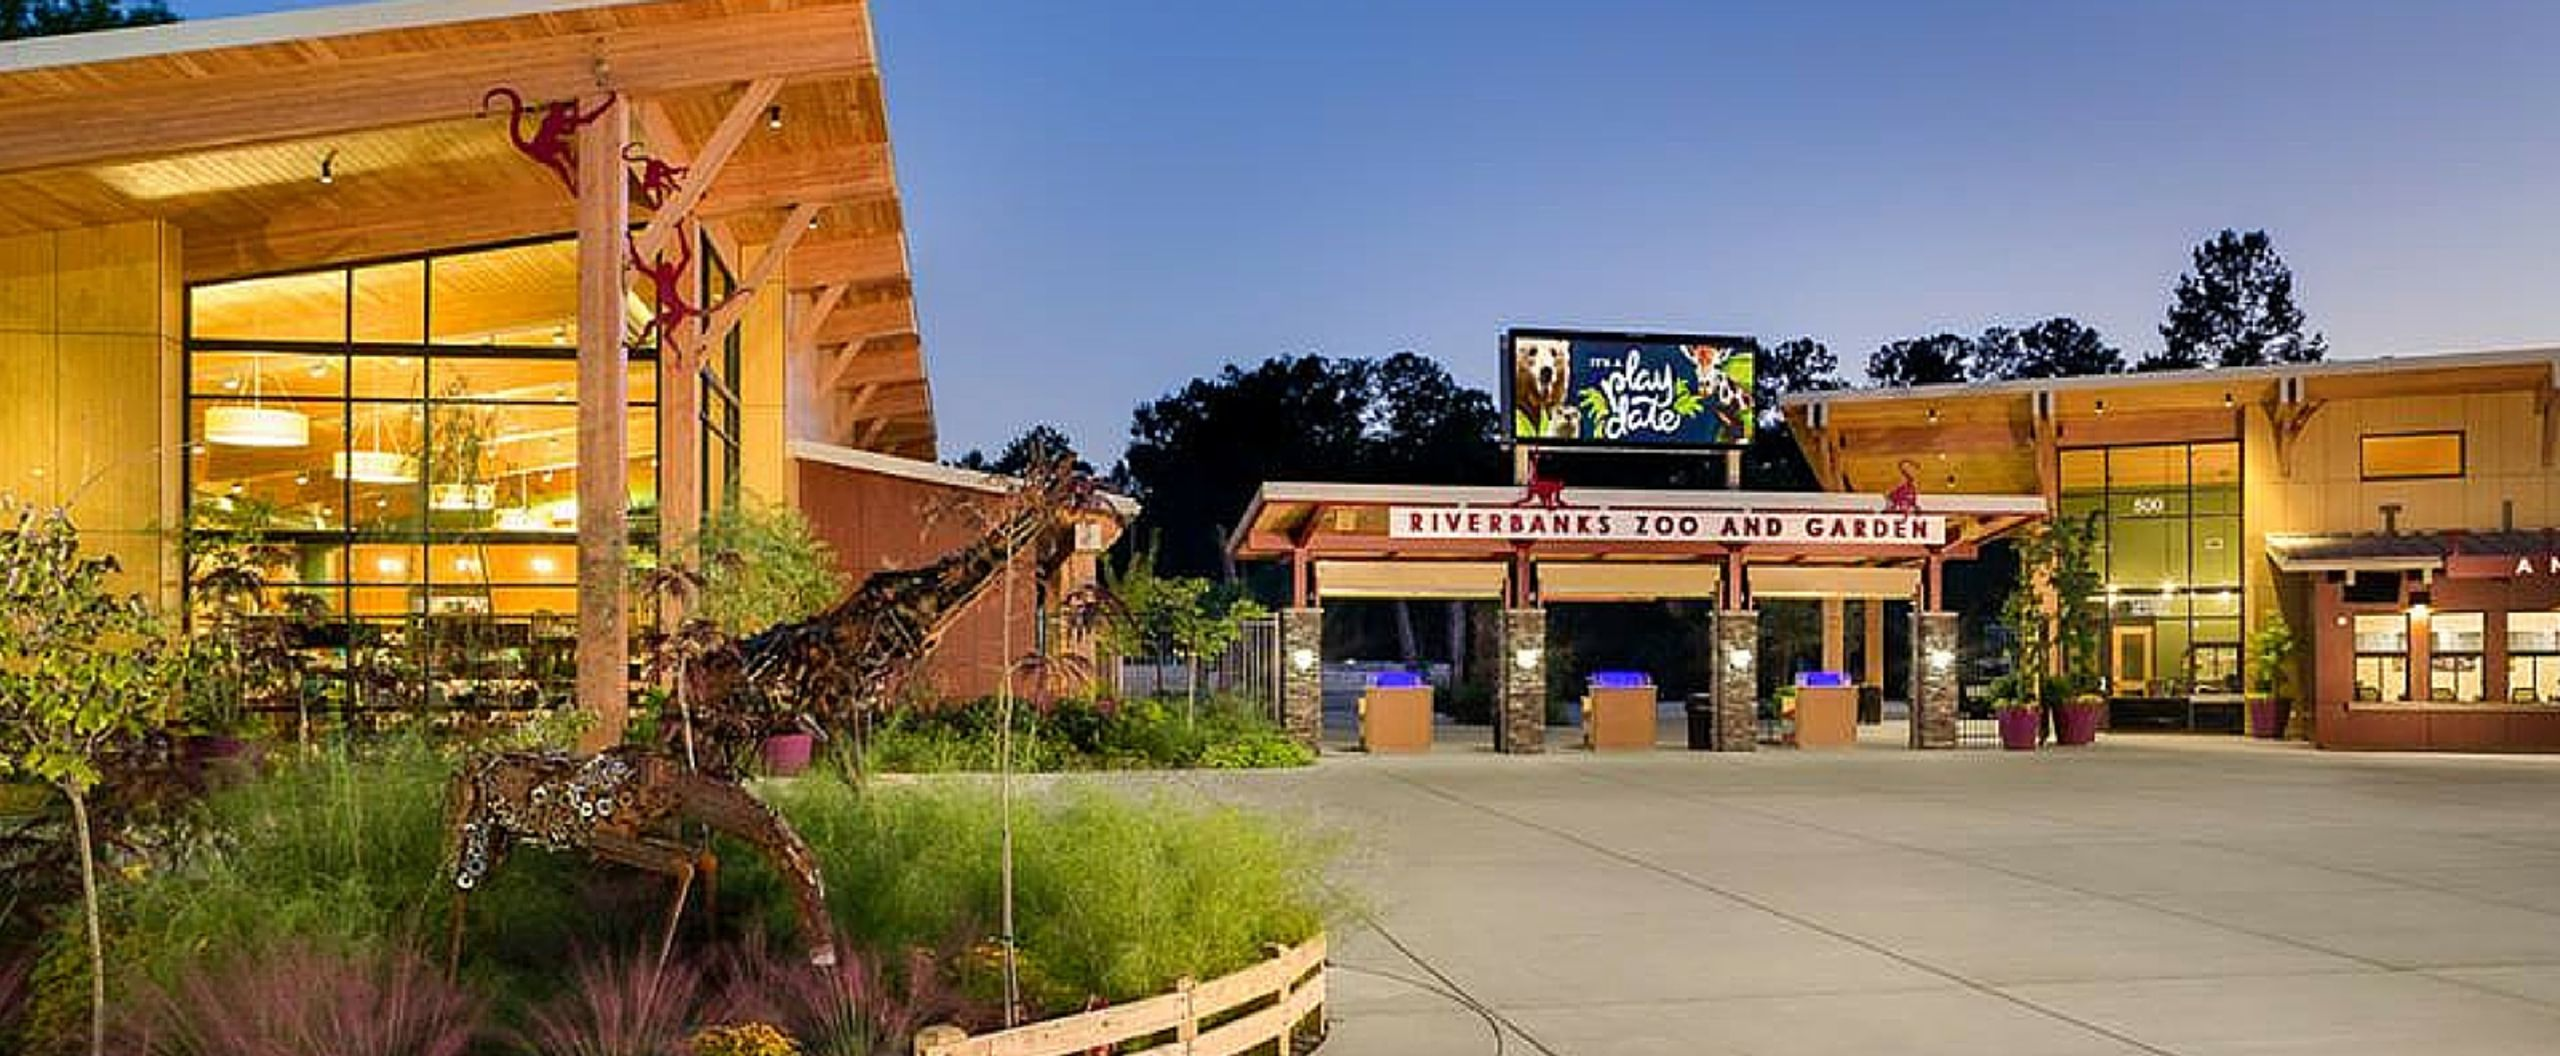 Riverbanks Zoo & Garden-SC Area Attraction